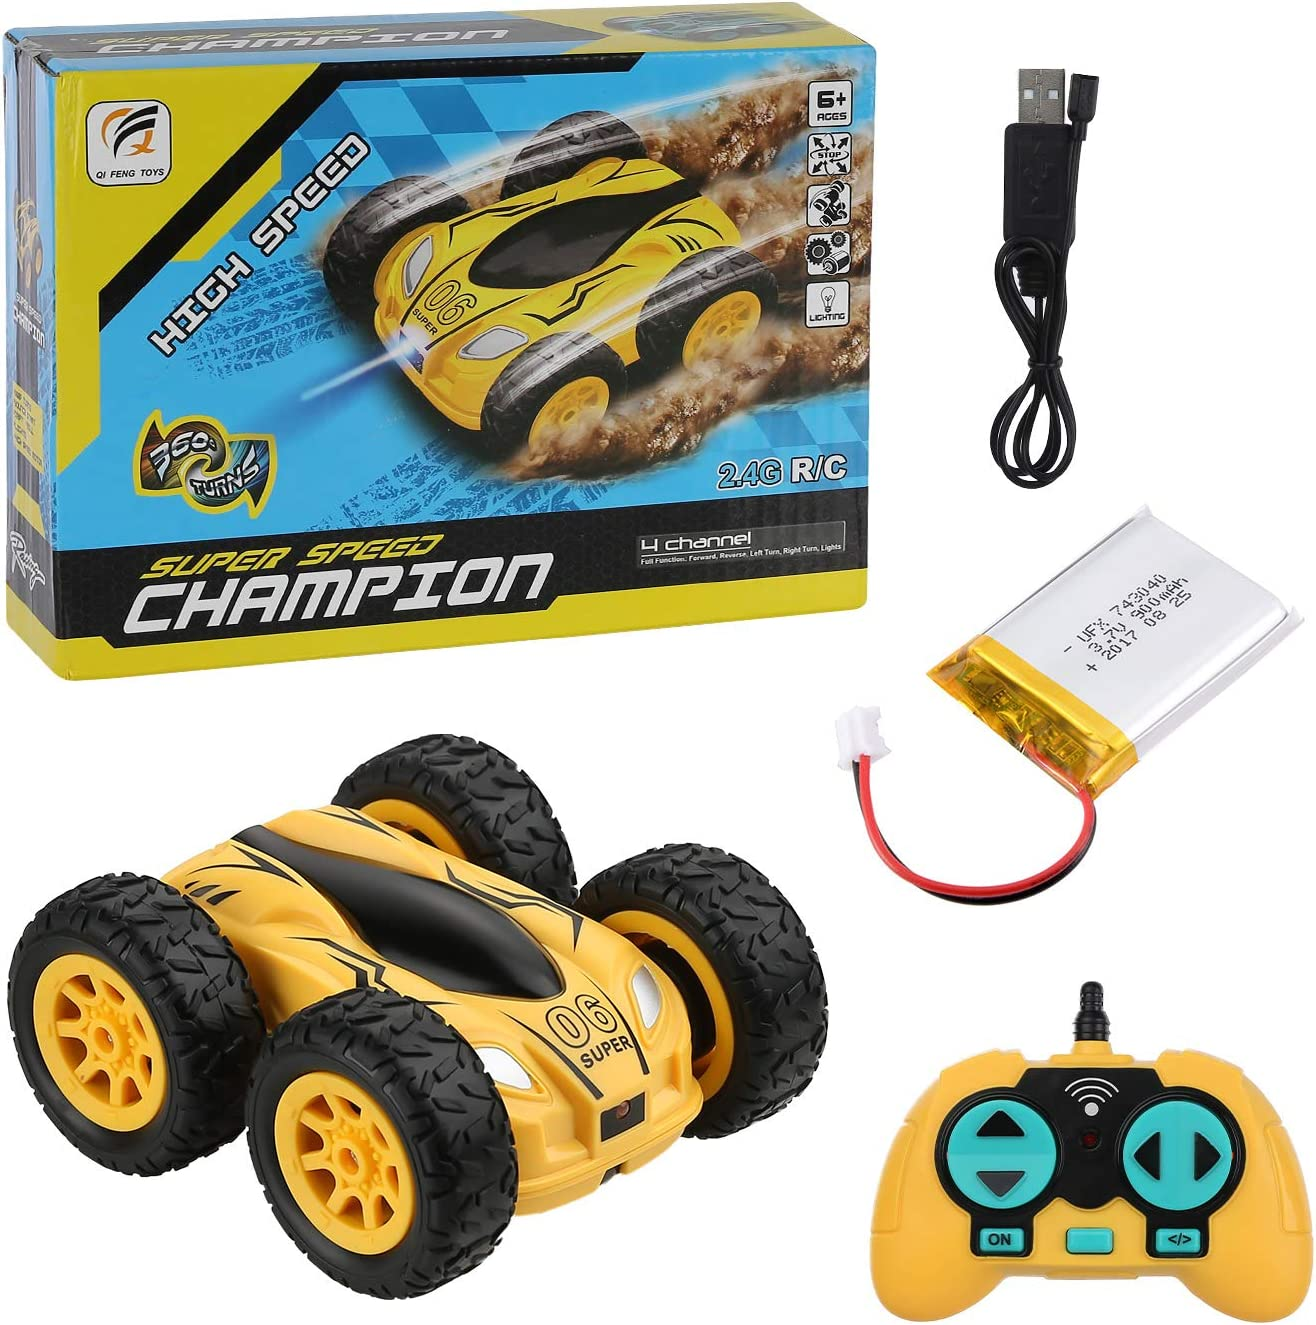 Remote Control Cars Childrens Toy Cars for 6-10 Years Old Boys and Girls 2.4 GHz Remote Control Stunt Car Waterproof RC Car Christmas Birthday Yellow